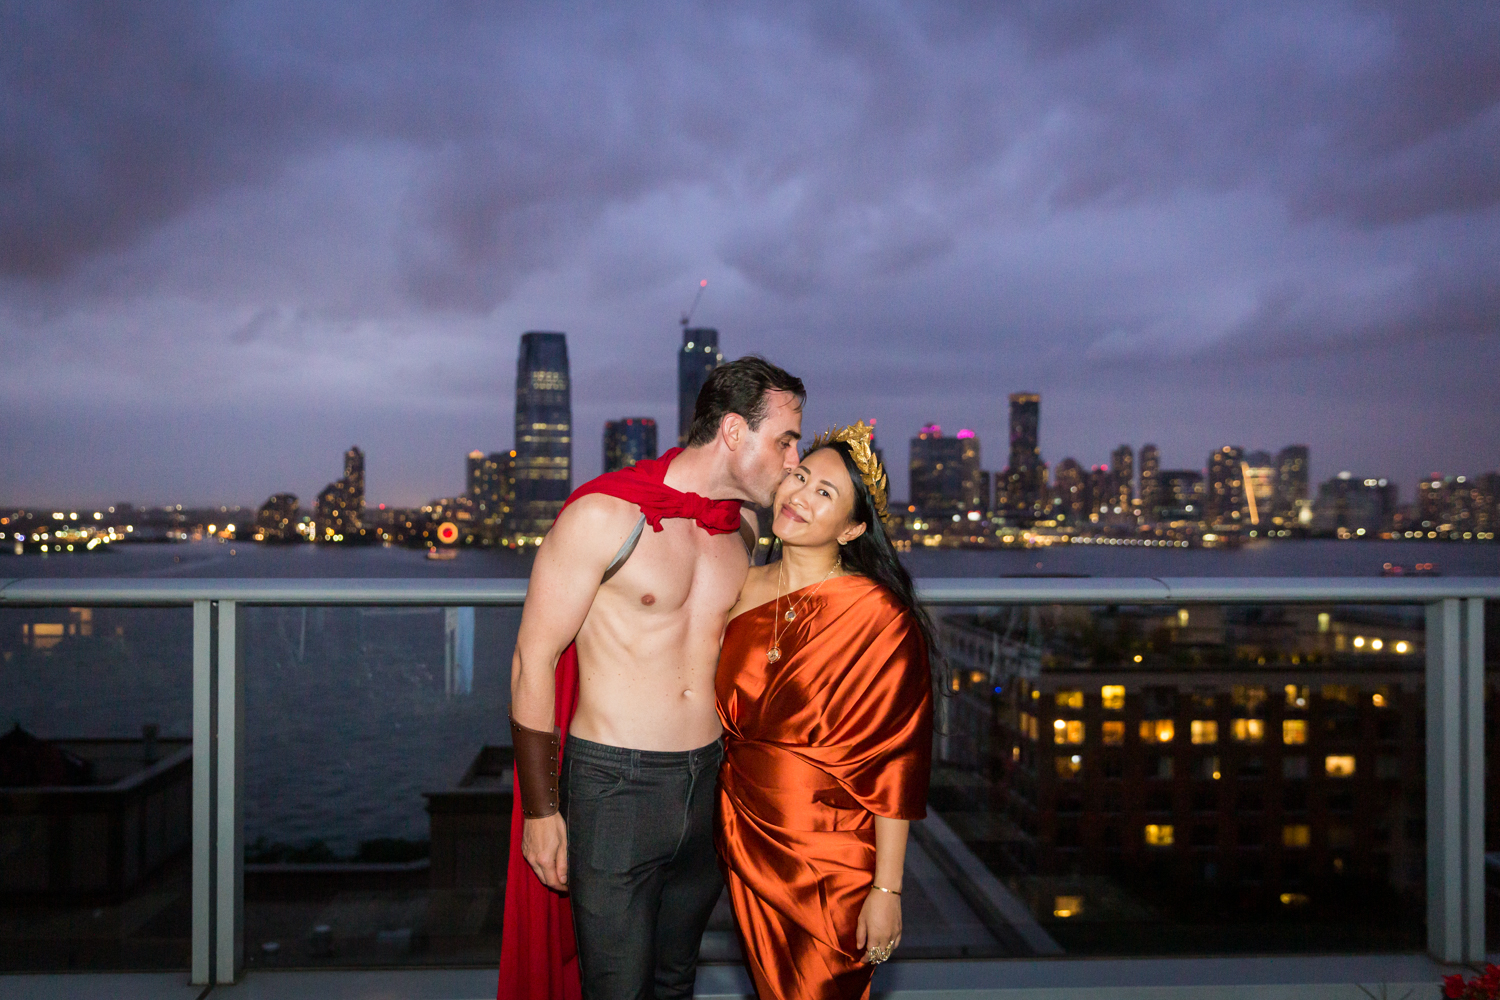 Man kissing woman at night wearing Roman outfit with NYC skyline in background